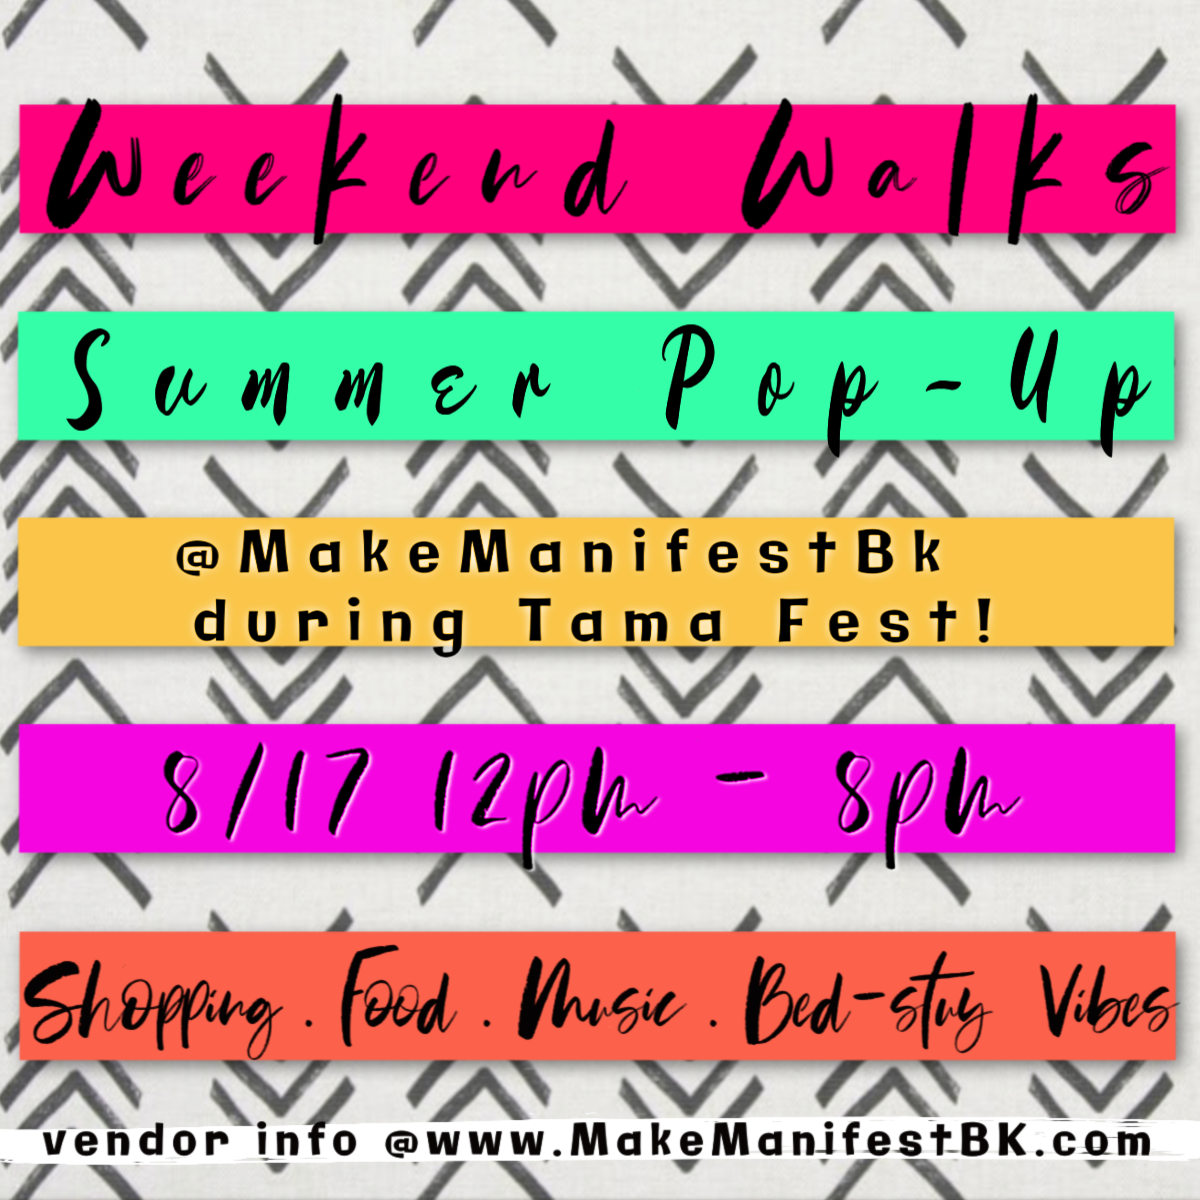 Weekend Walks Summer PoP Up! - Summer time is always full-up of vibes on Tompkins Ave! This year's first Summer Pop-Up is happening during the annual TAMA FEST so there is more fun, more vibes, and more opportunities to share your works with the masses!NEXT DATE AUGUST 17THVendor spaces are limited!!!! Apply HERE